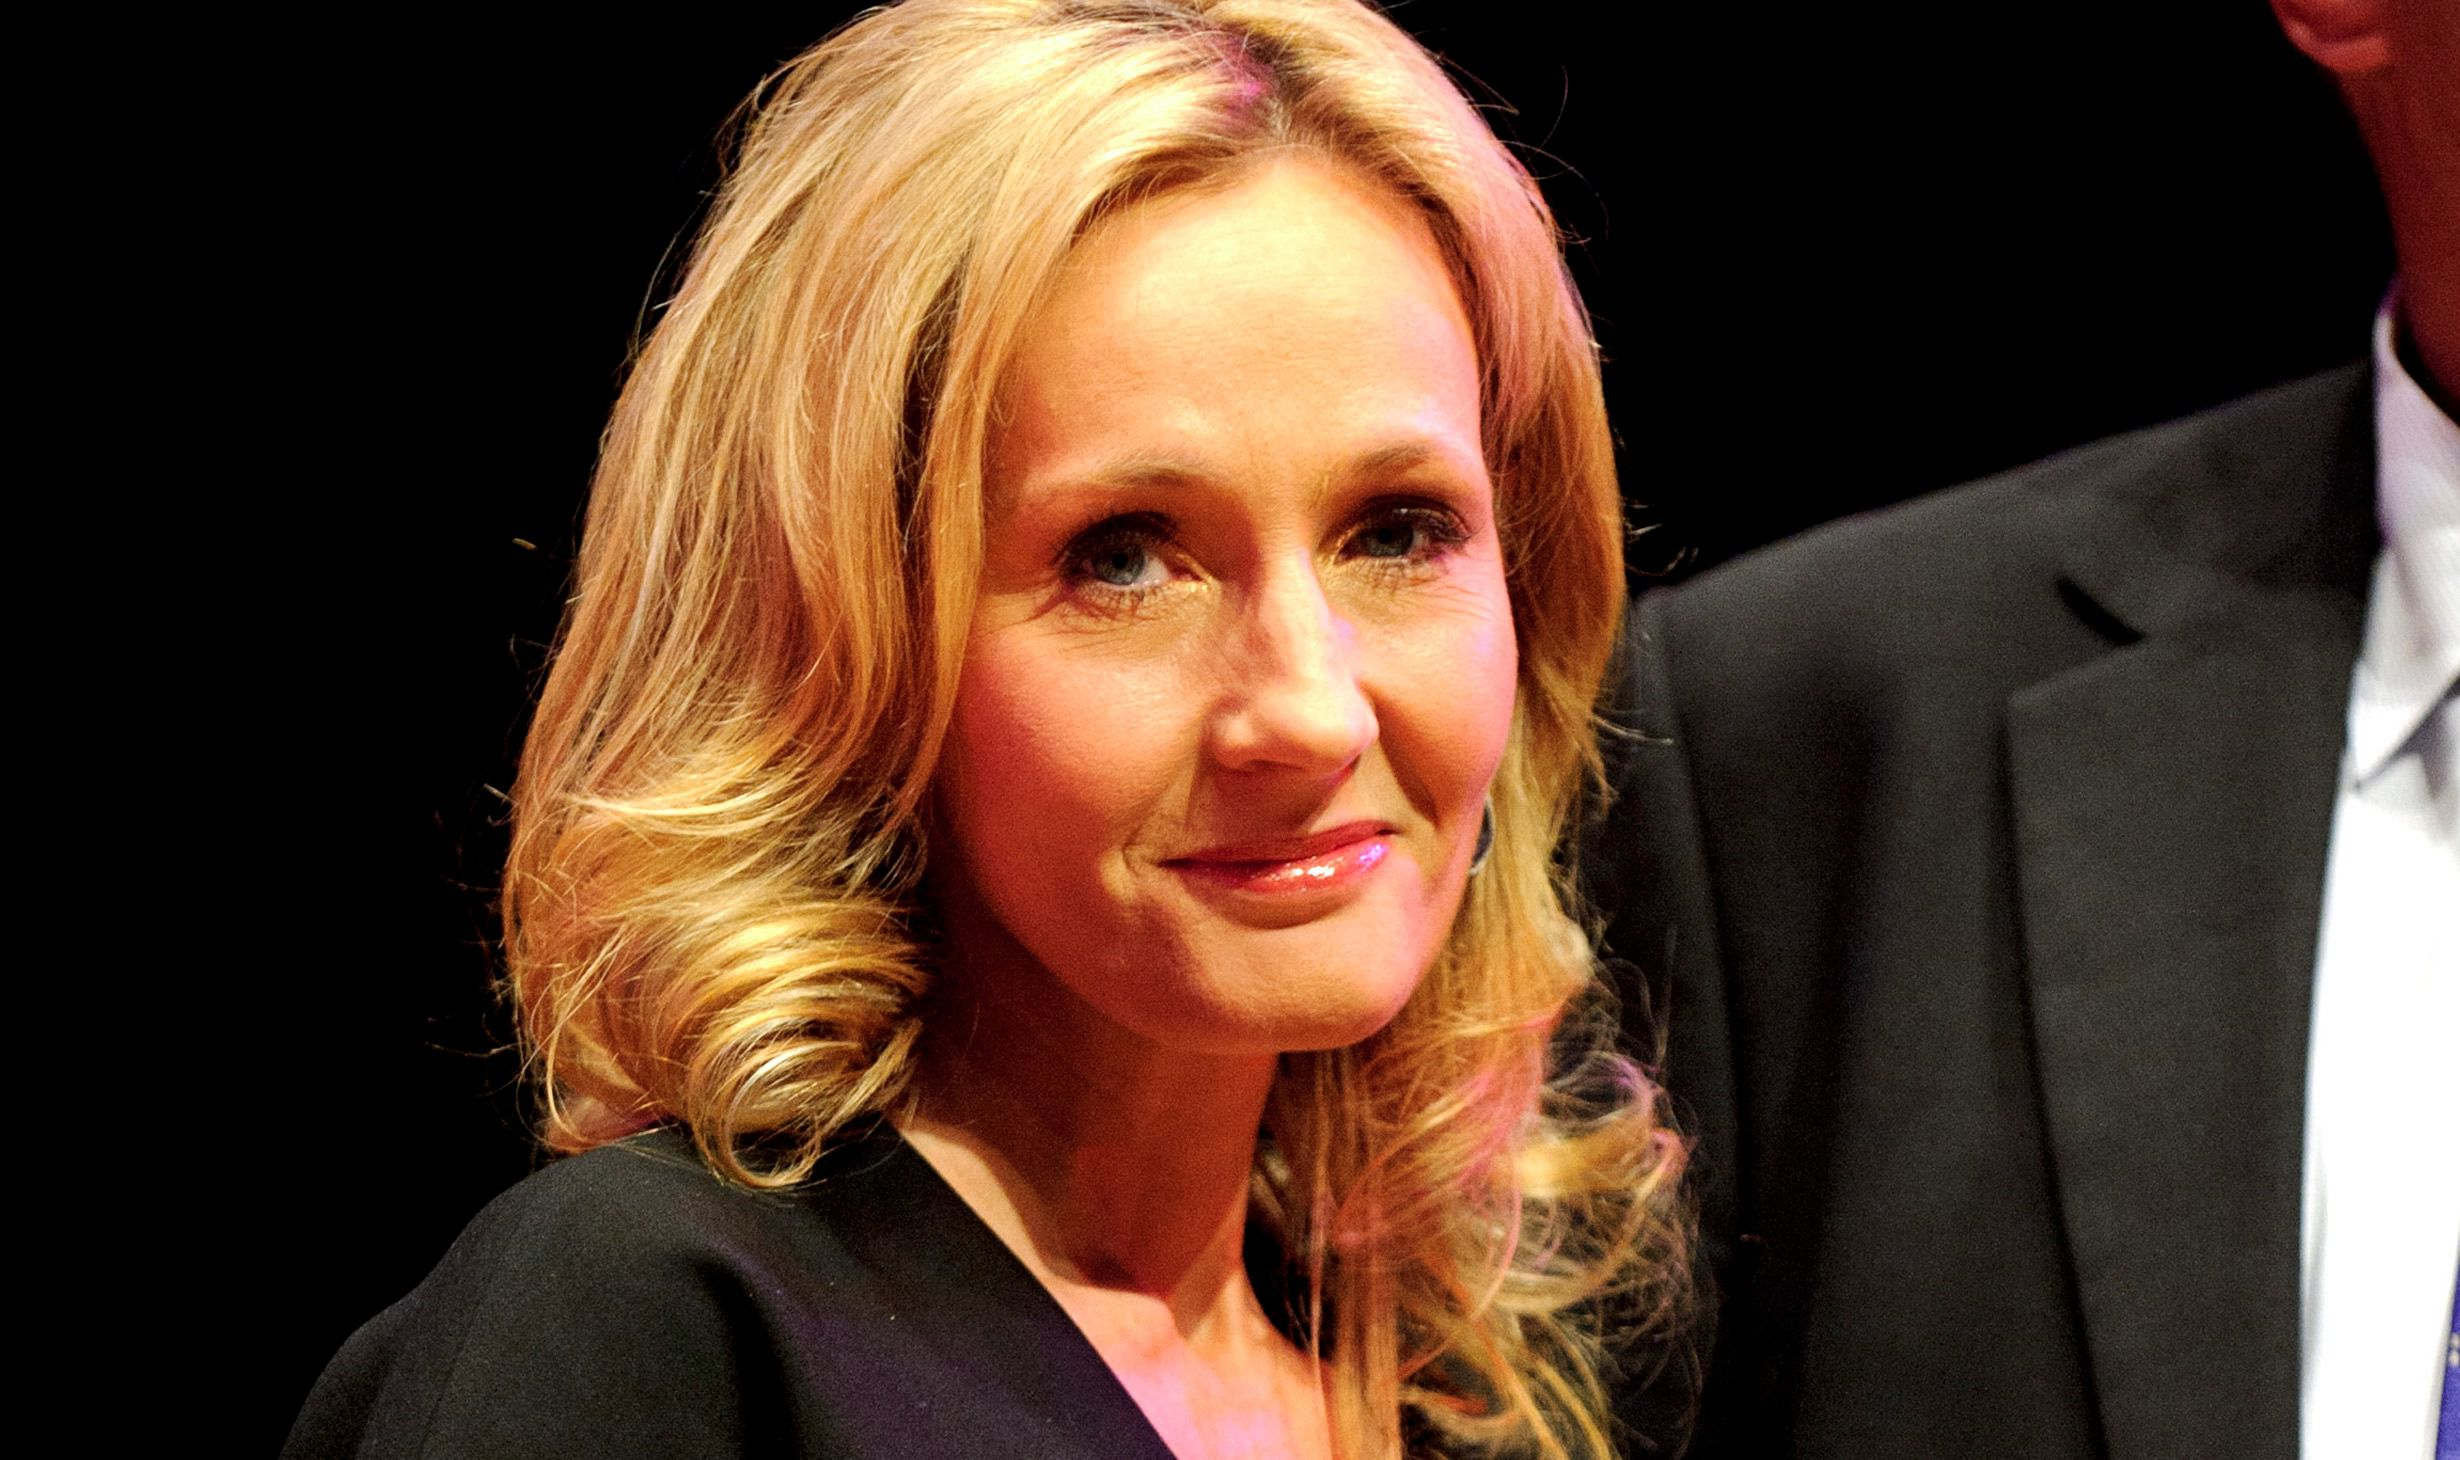 Jk Rowling Tweets Such A Beautiful Thing About Muslim Campaign